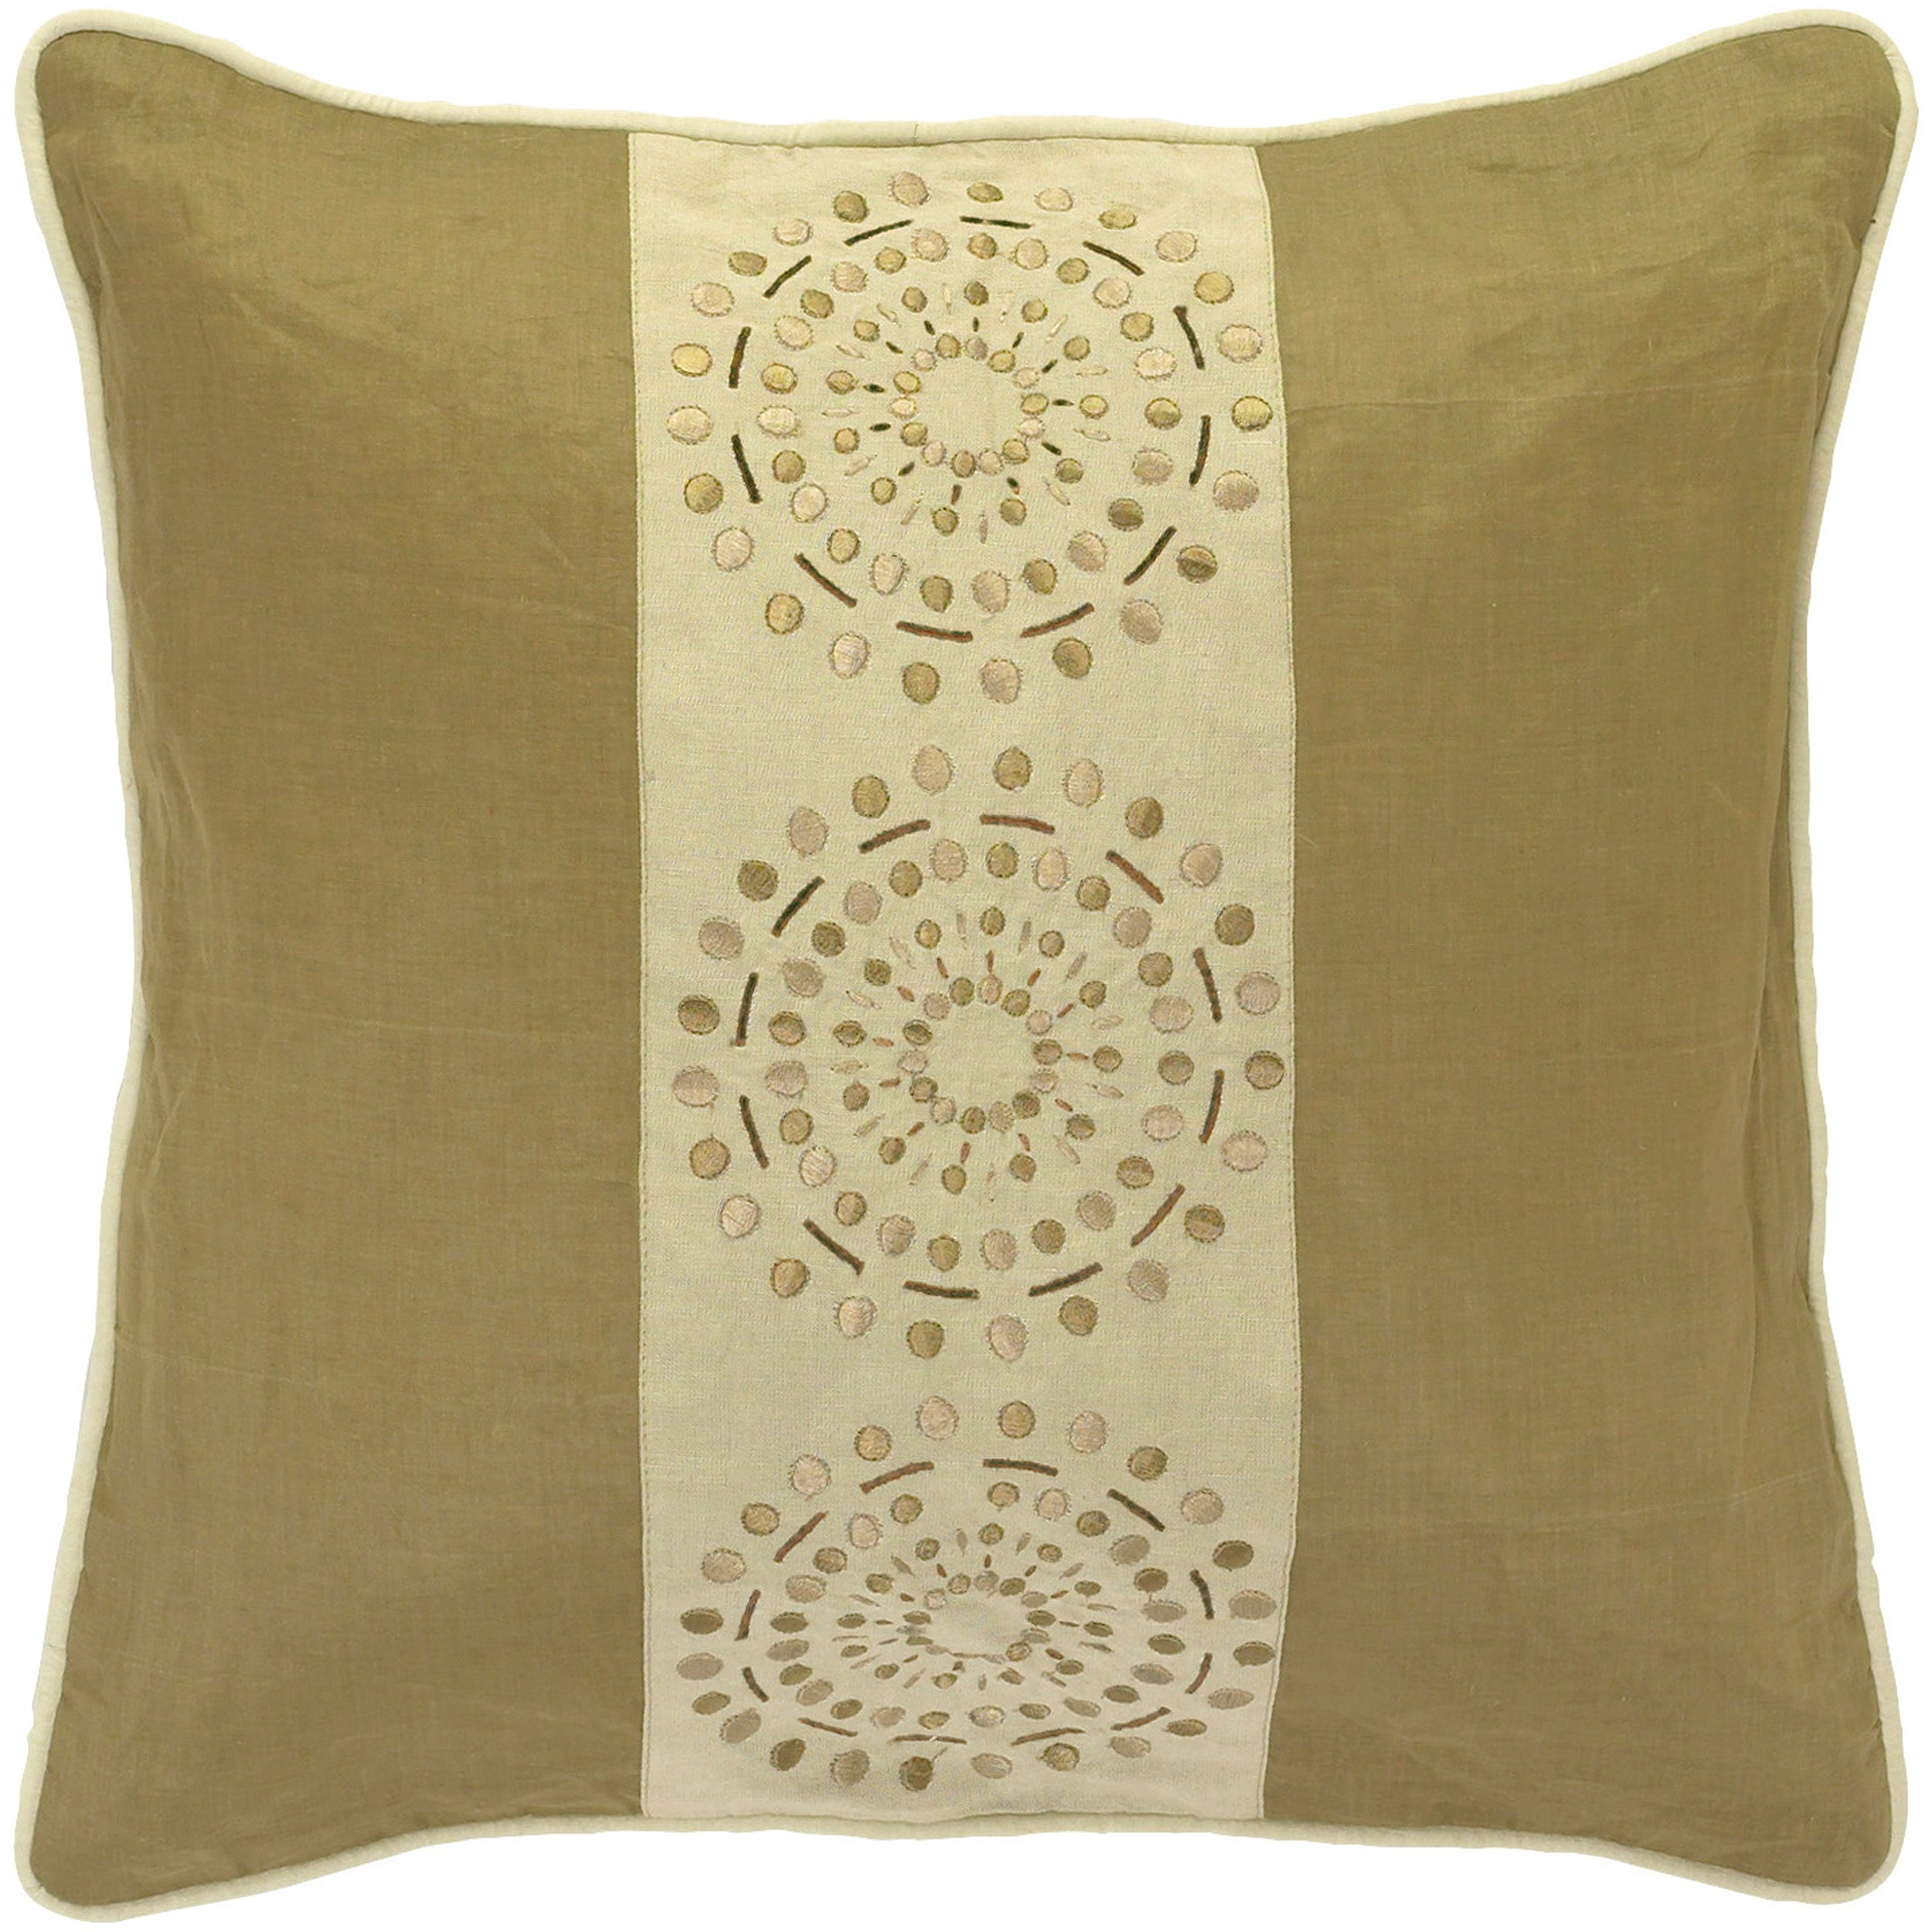 Newport Decorative Pillow : Share: Email